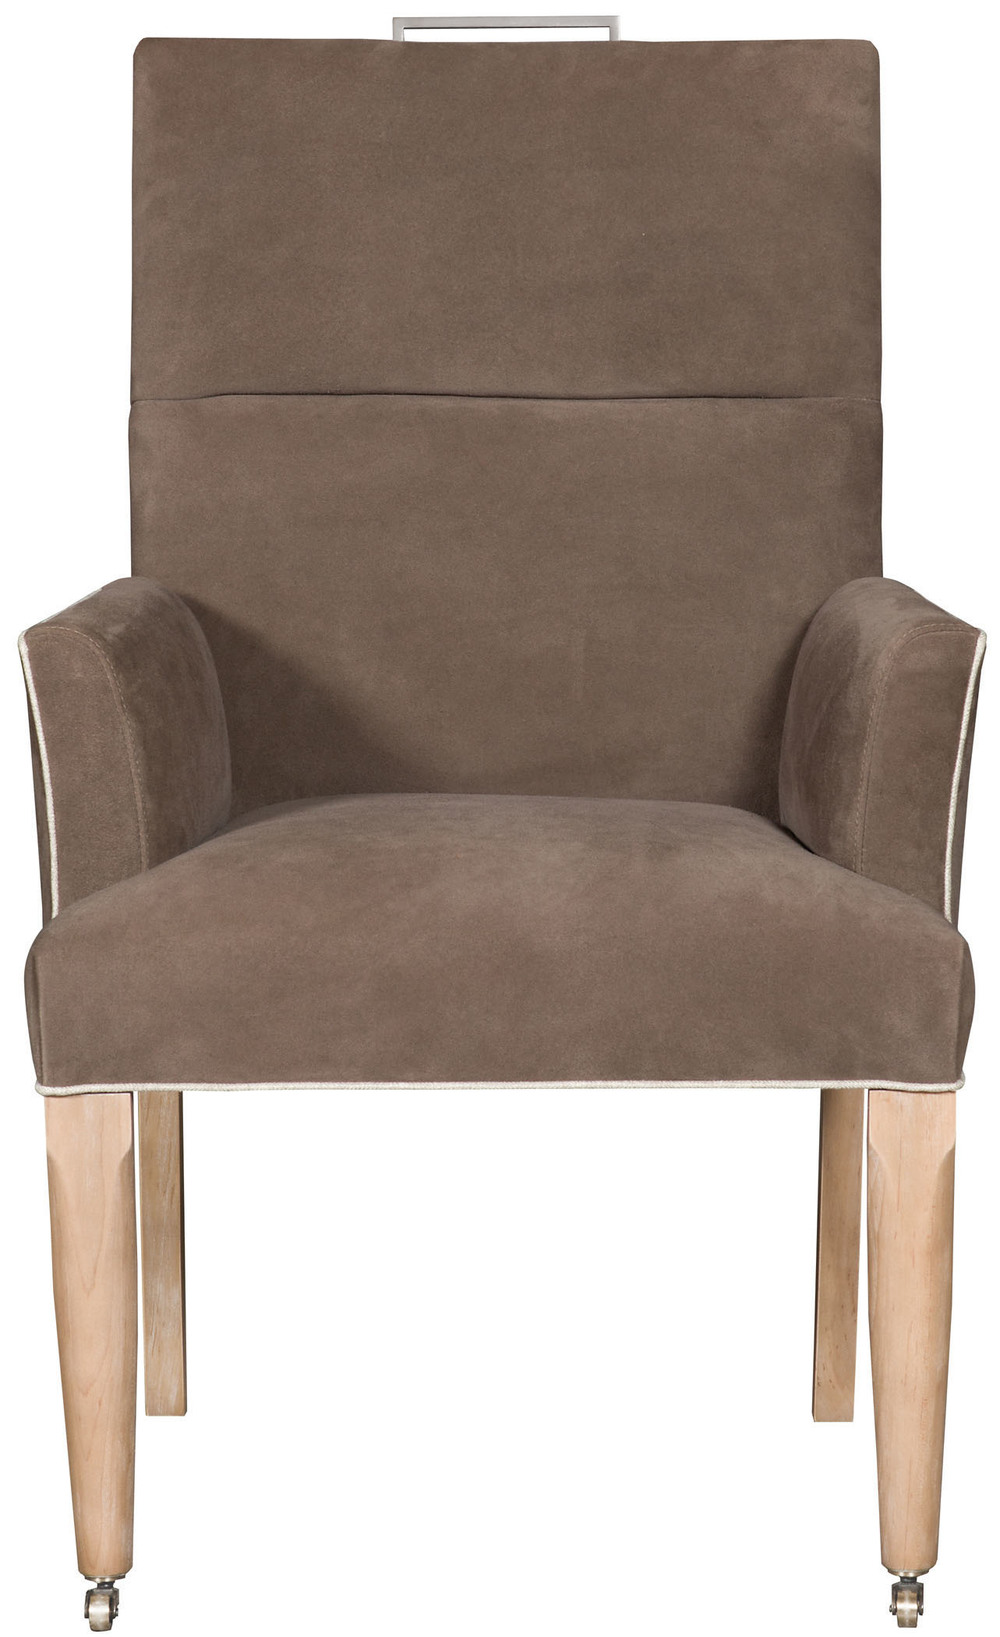 Vanguard Furniture - Brattle Road Arm Chair